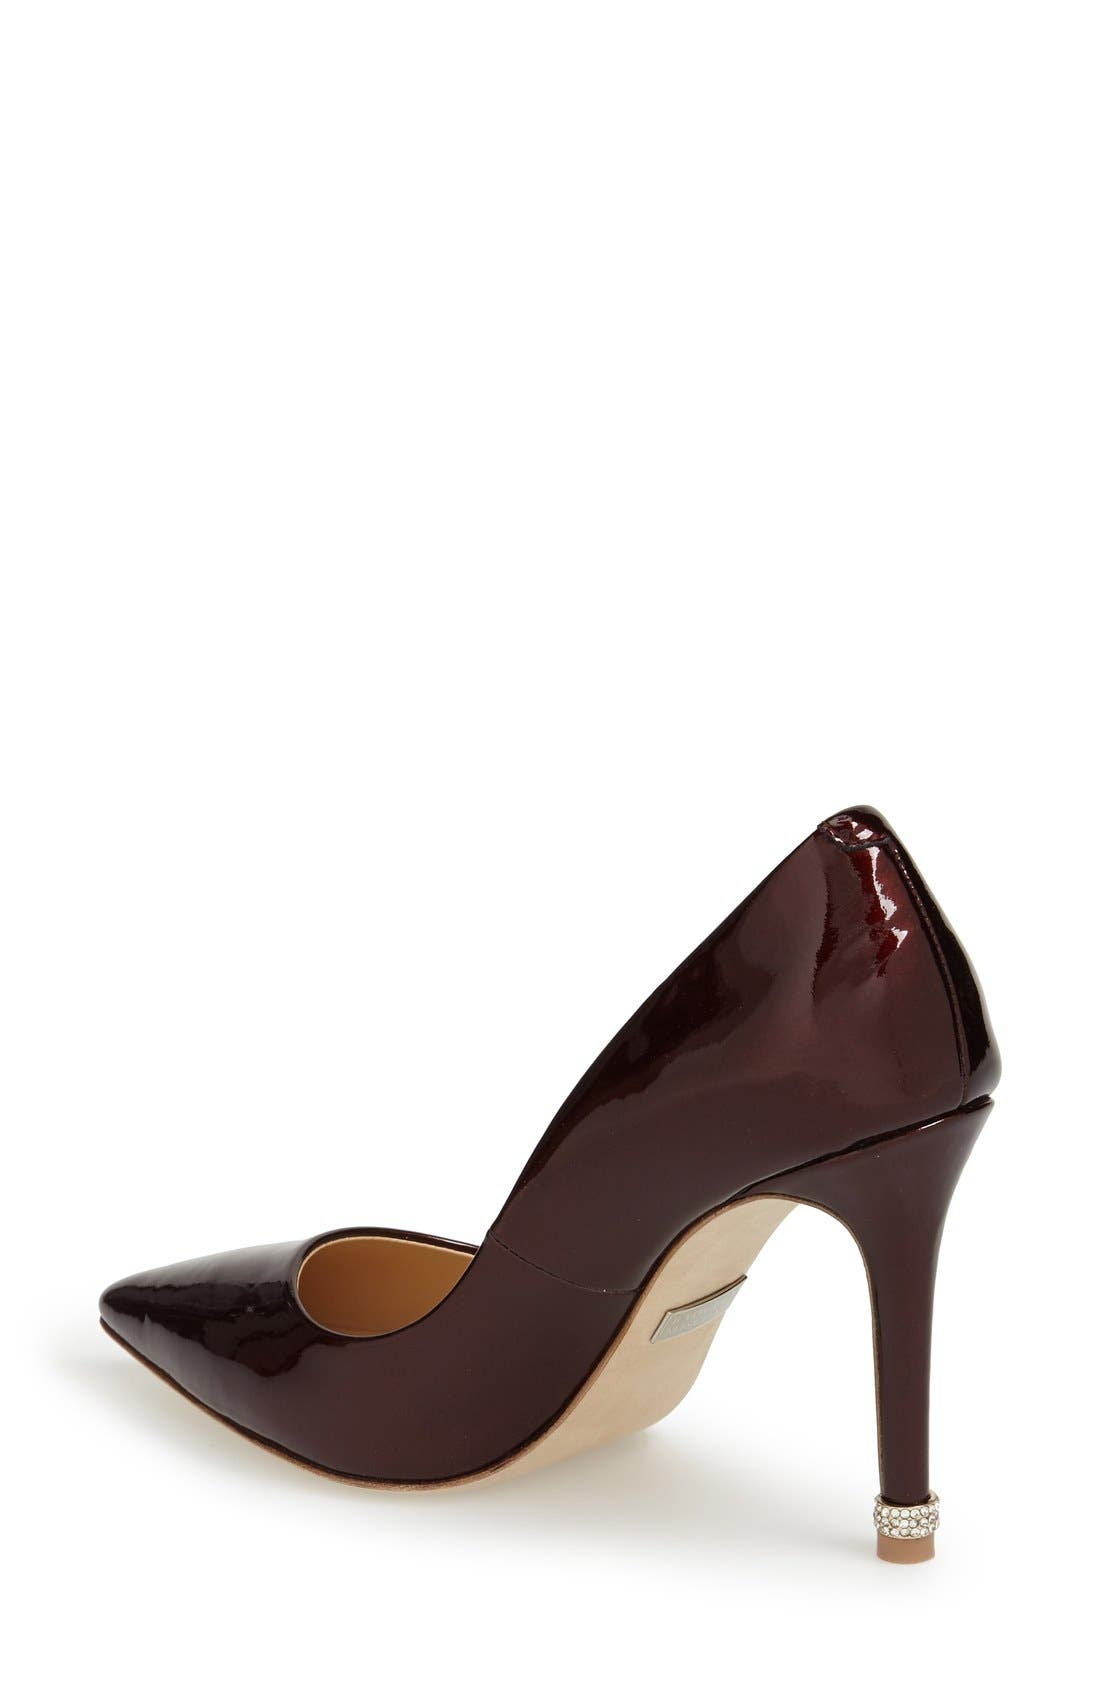 Alternate Image 2  - Badgley Mischka 'Noelle' Pointy Toe Pump (Women)